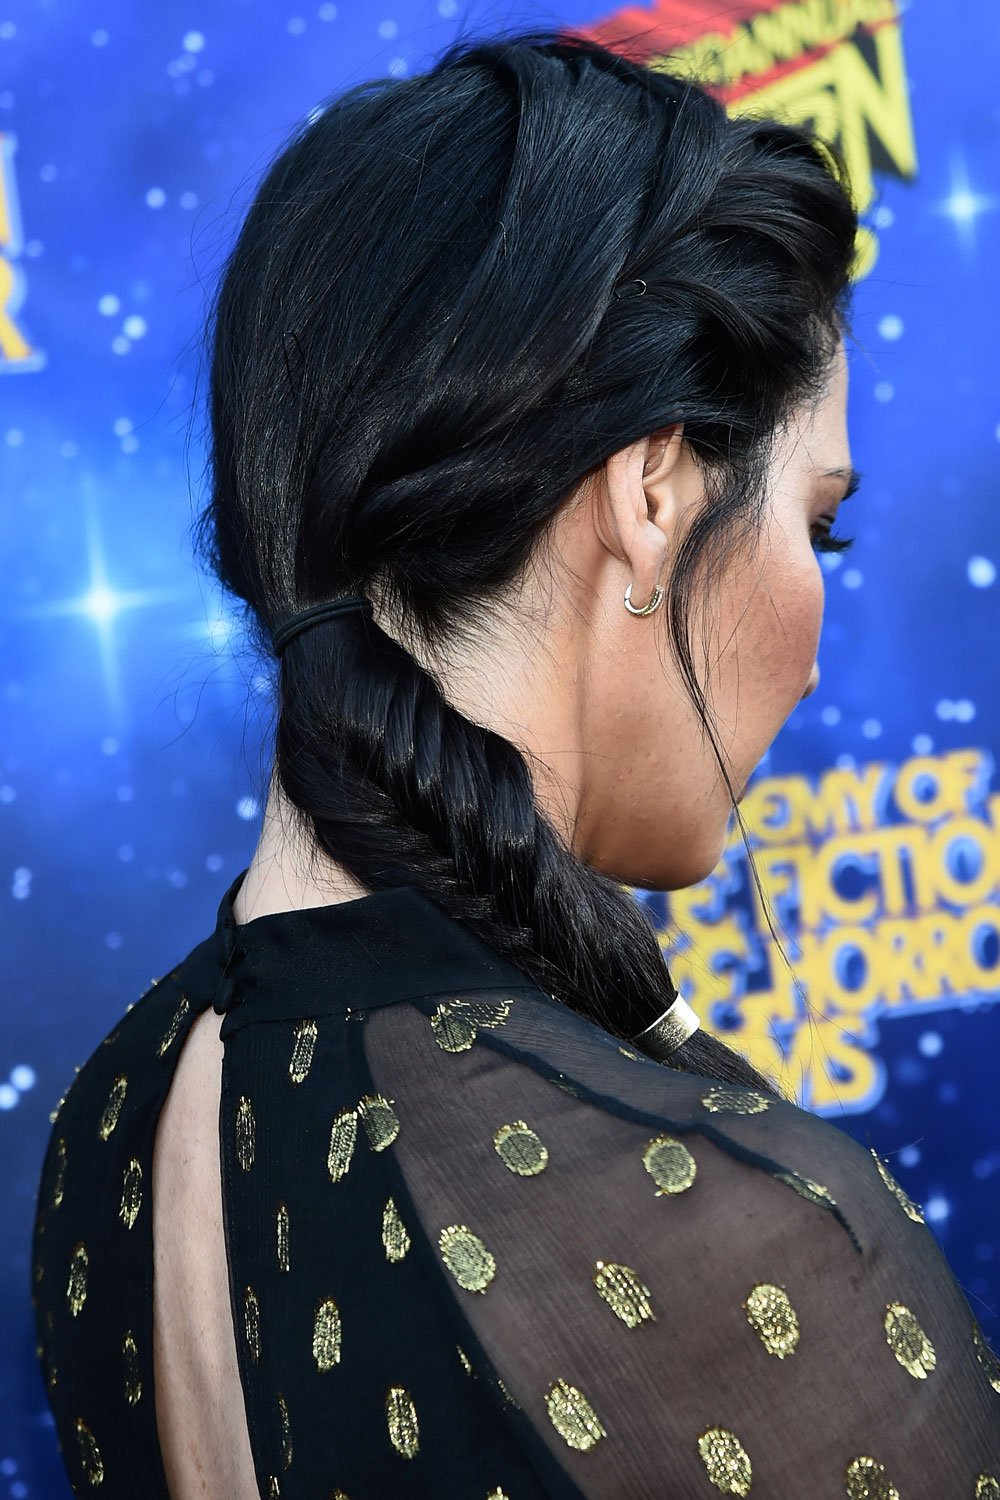 Need a luxe hairstyle for a big event? Check out these A list ponytails for MAJOR inspo! https://t.co/h6zenIvRT9 https://t.co/wSB8RREV5B